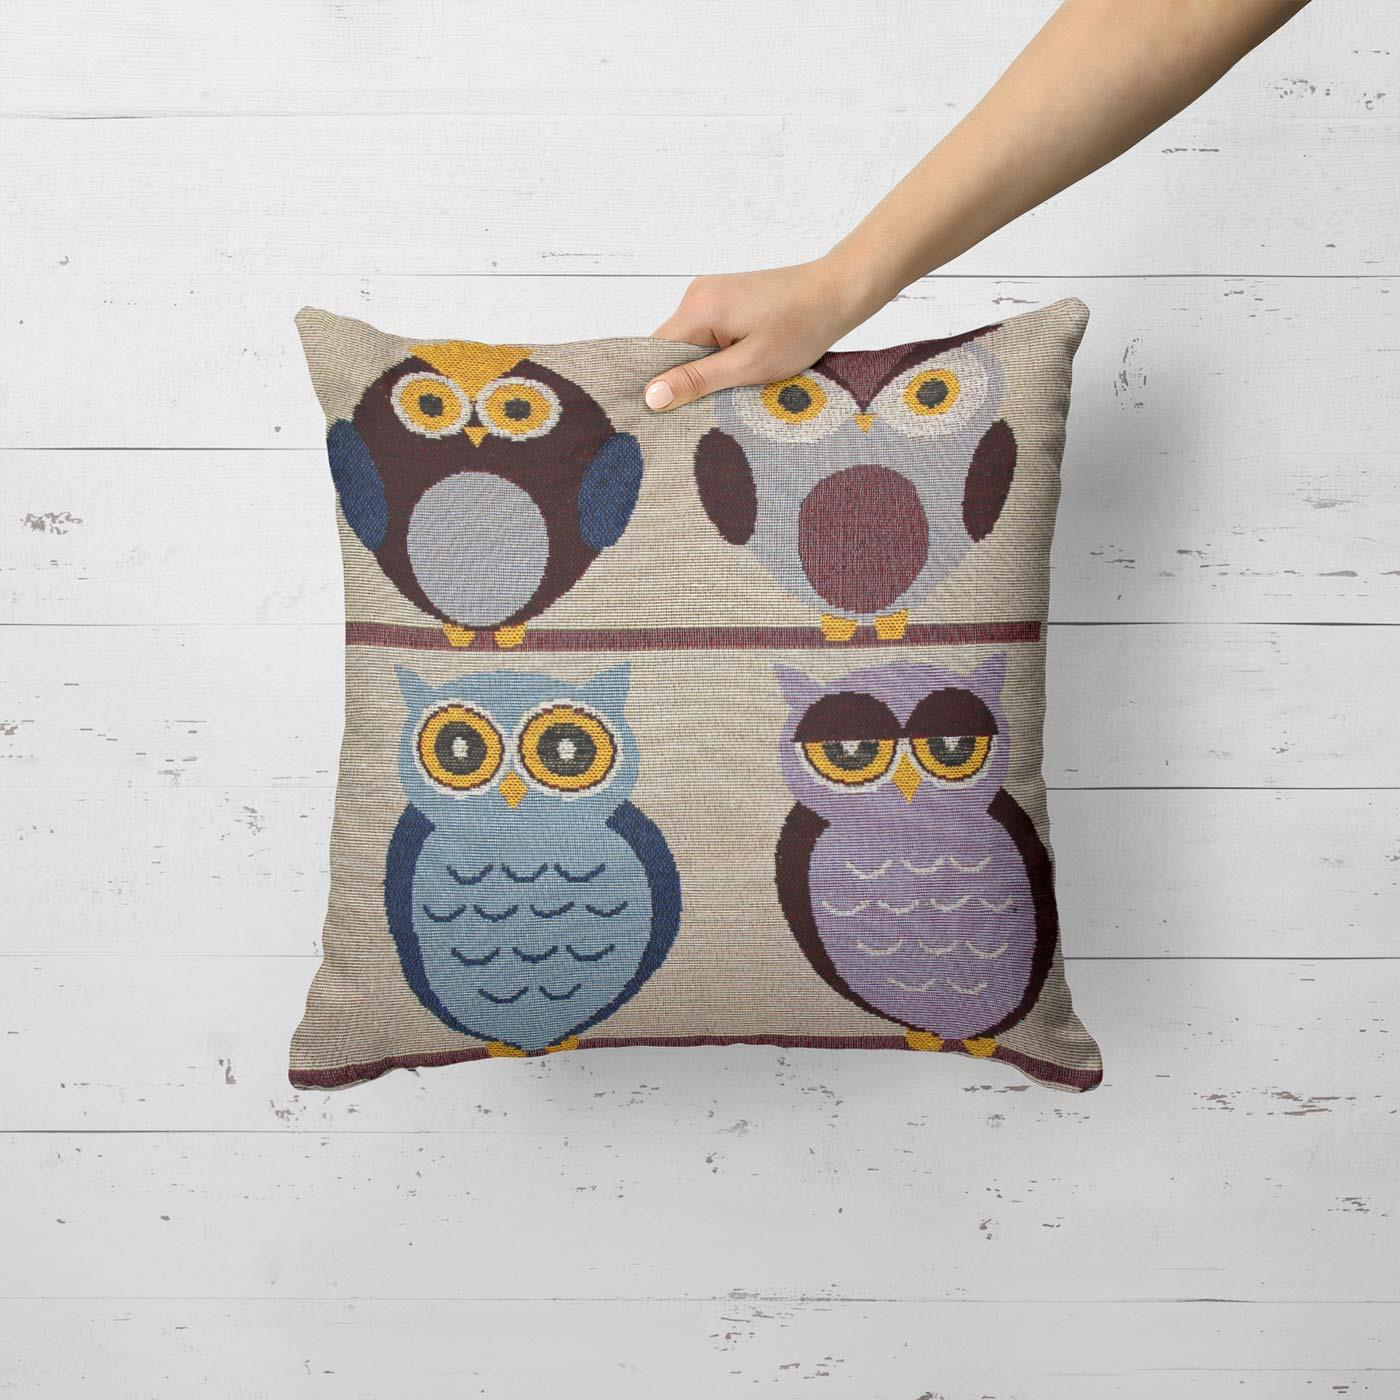 Tapestry-Cushion-Covers-Vintage-Pillow-Cover-Collection-18-034-45cm-Filled-Cushions thumbnail 151